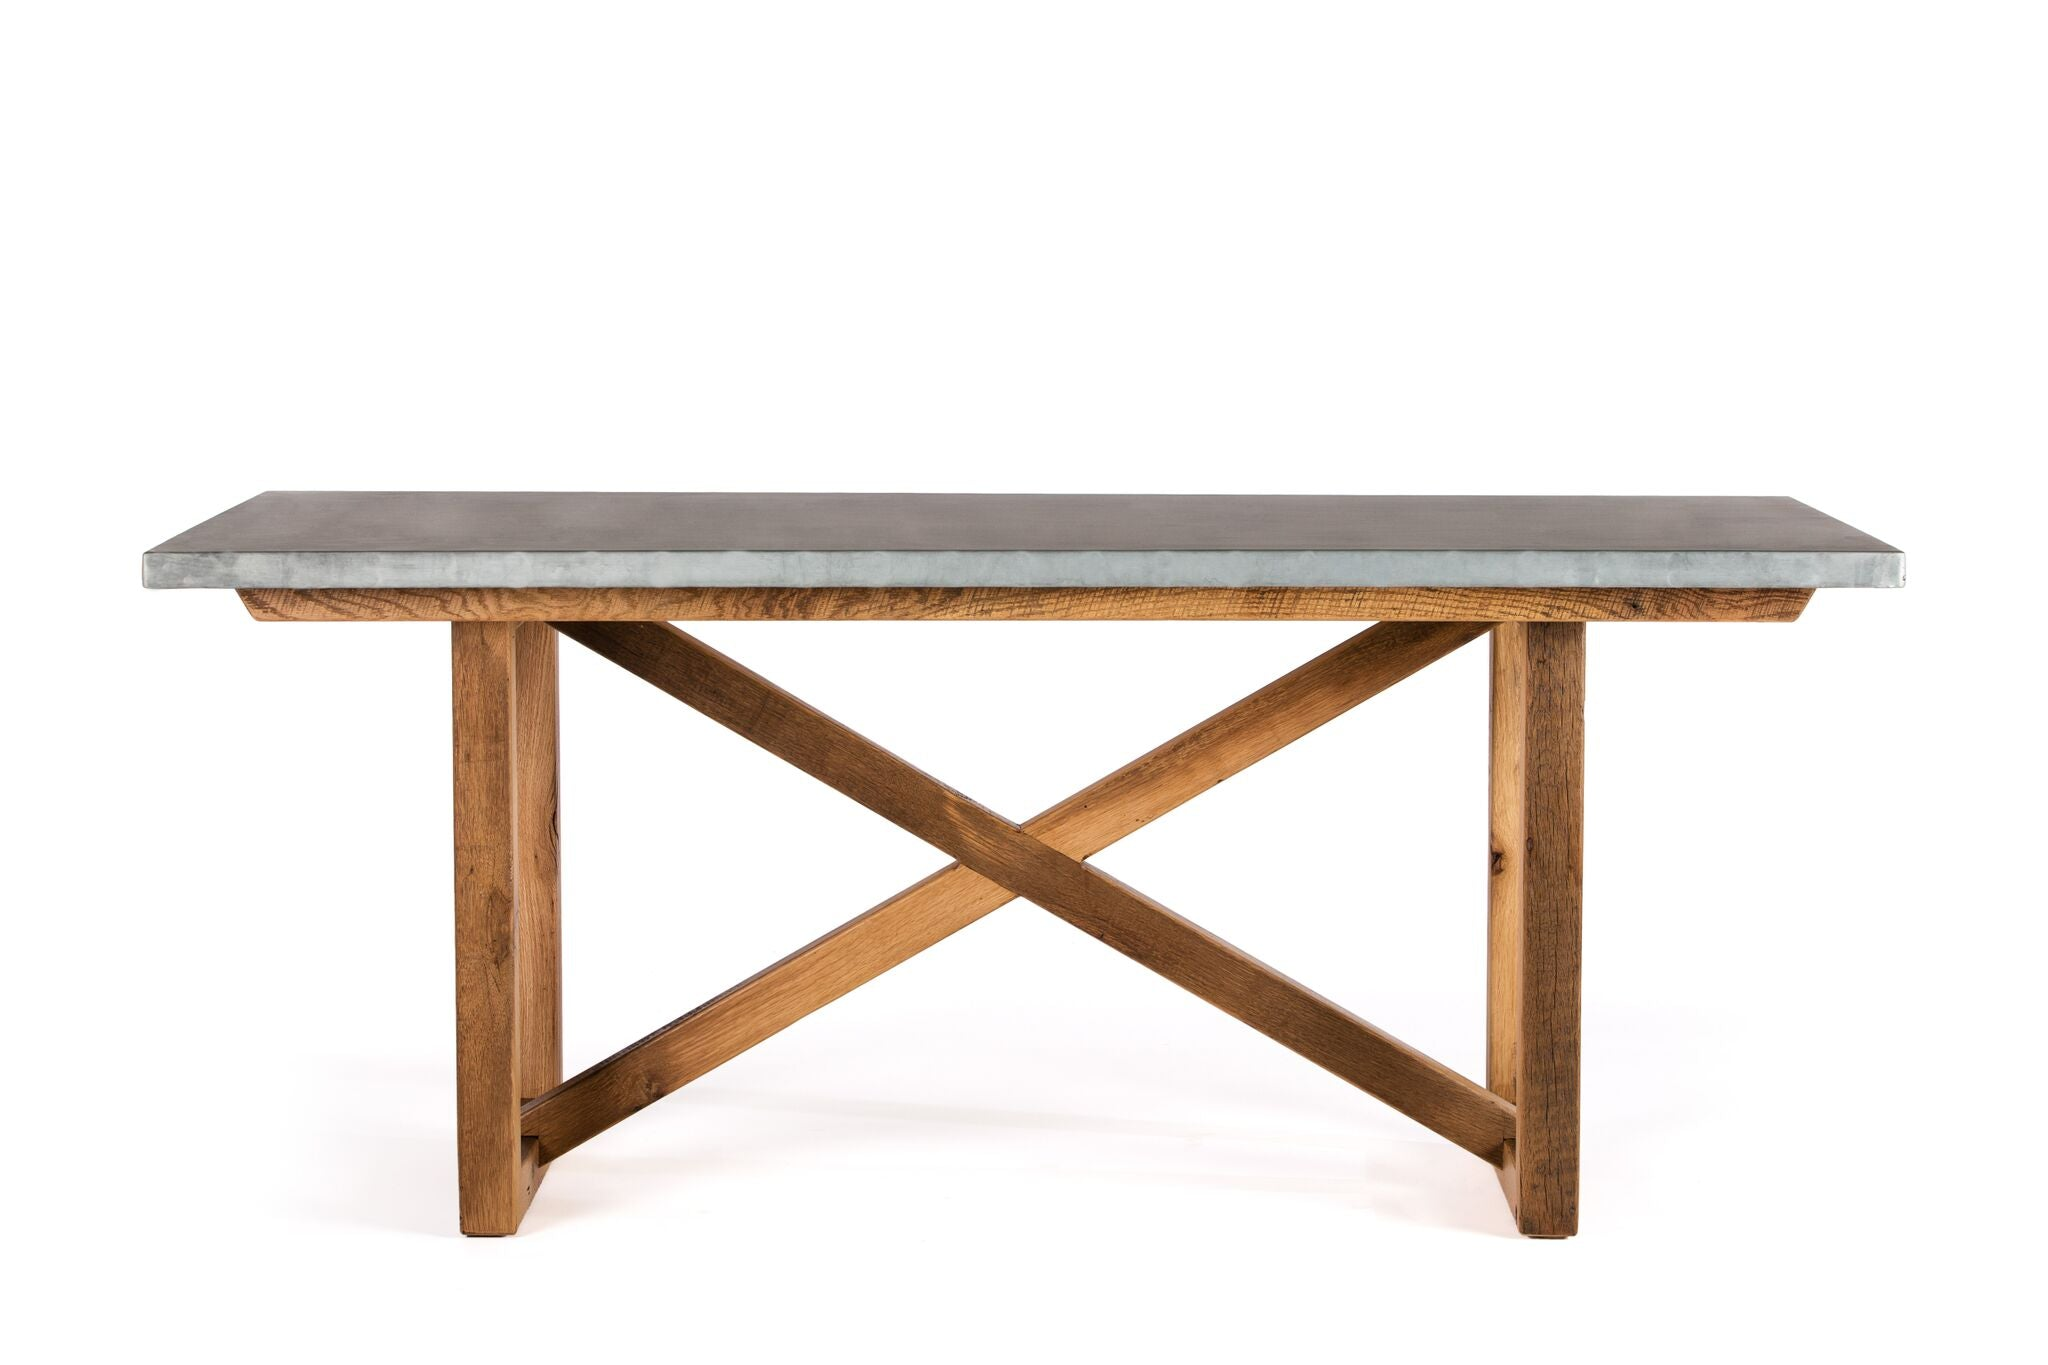 "Zinc Rectangular Table | Astor Table | CLASSIC | Natural Ash | CUSTOM SIZE L 60 W 37 H 30 | 1.5"" Standard